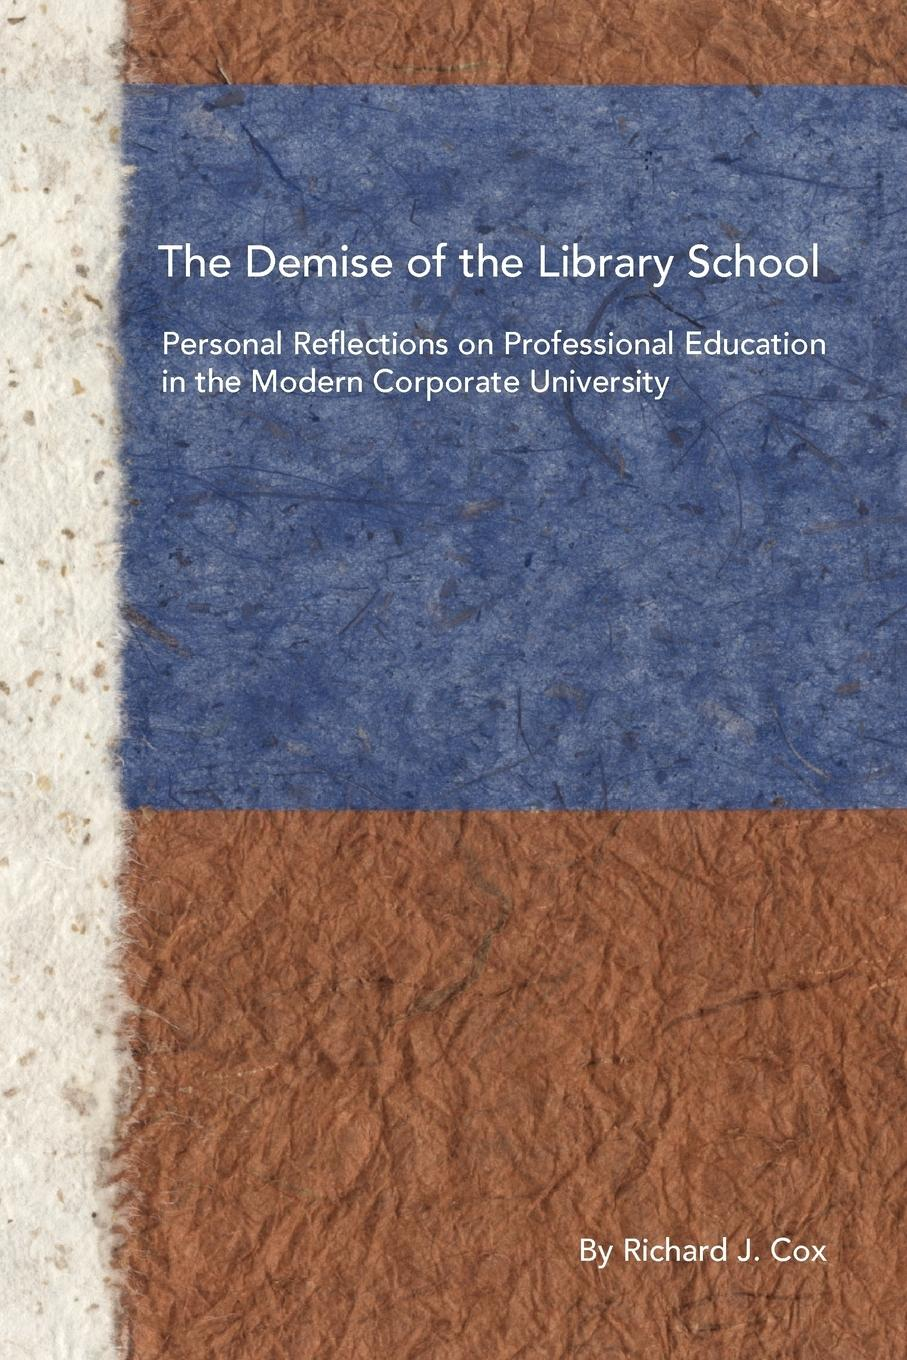 The Demise of the Library School - Cox, Richard J.